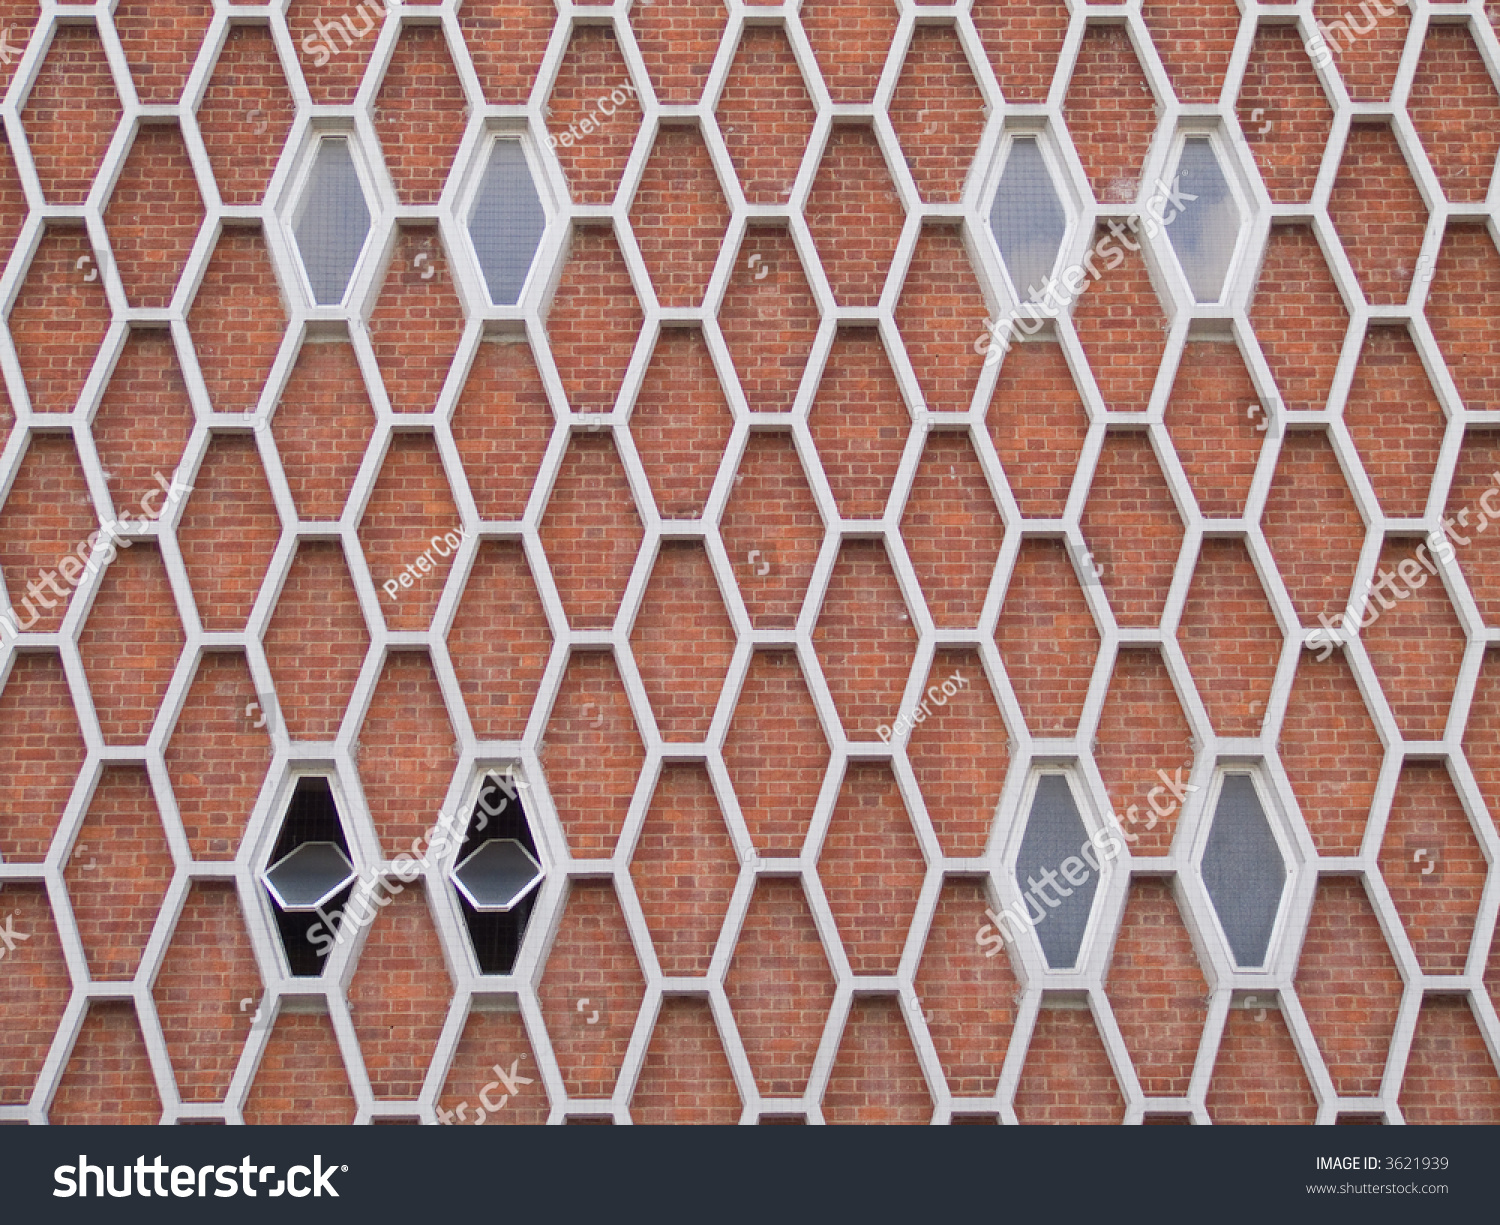 Honeycomb Brick Work : Exterior face s brick building honeycomb stock photo